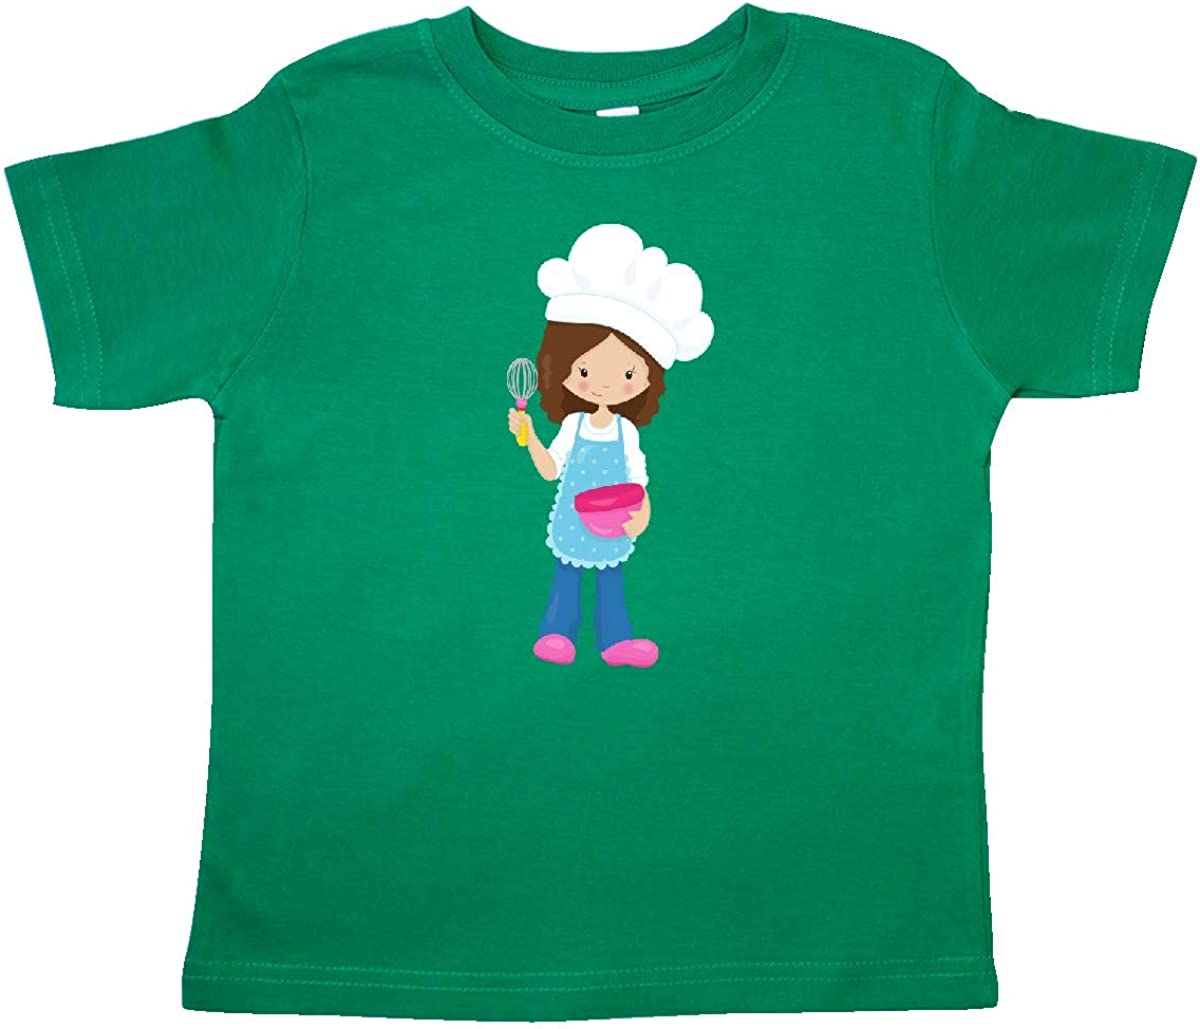 Brown Hair Toddler T-Shirt inktastic Baking Girl Girl with Chefs Hat